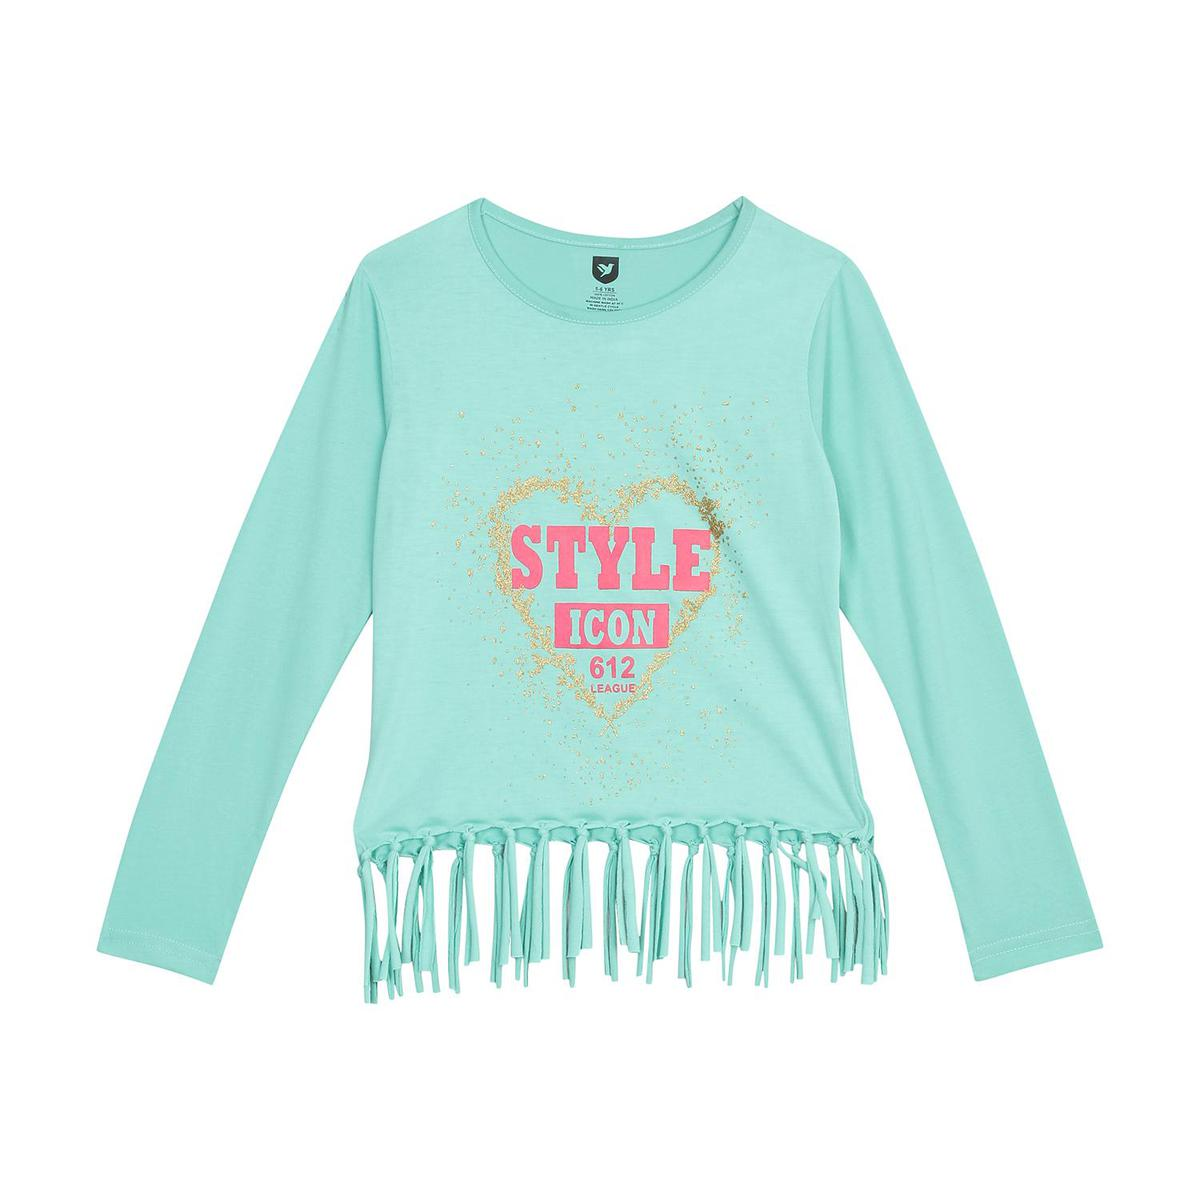 612 League - Girl's Sea Green Colored Woven Knit Graphic Top